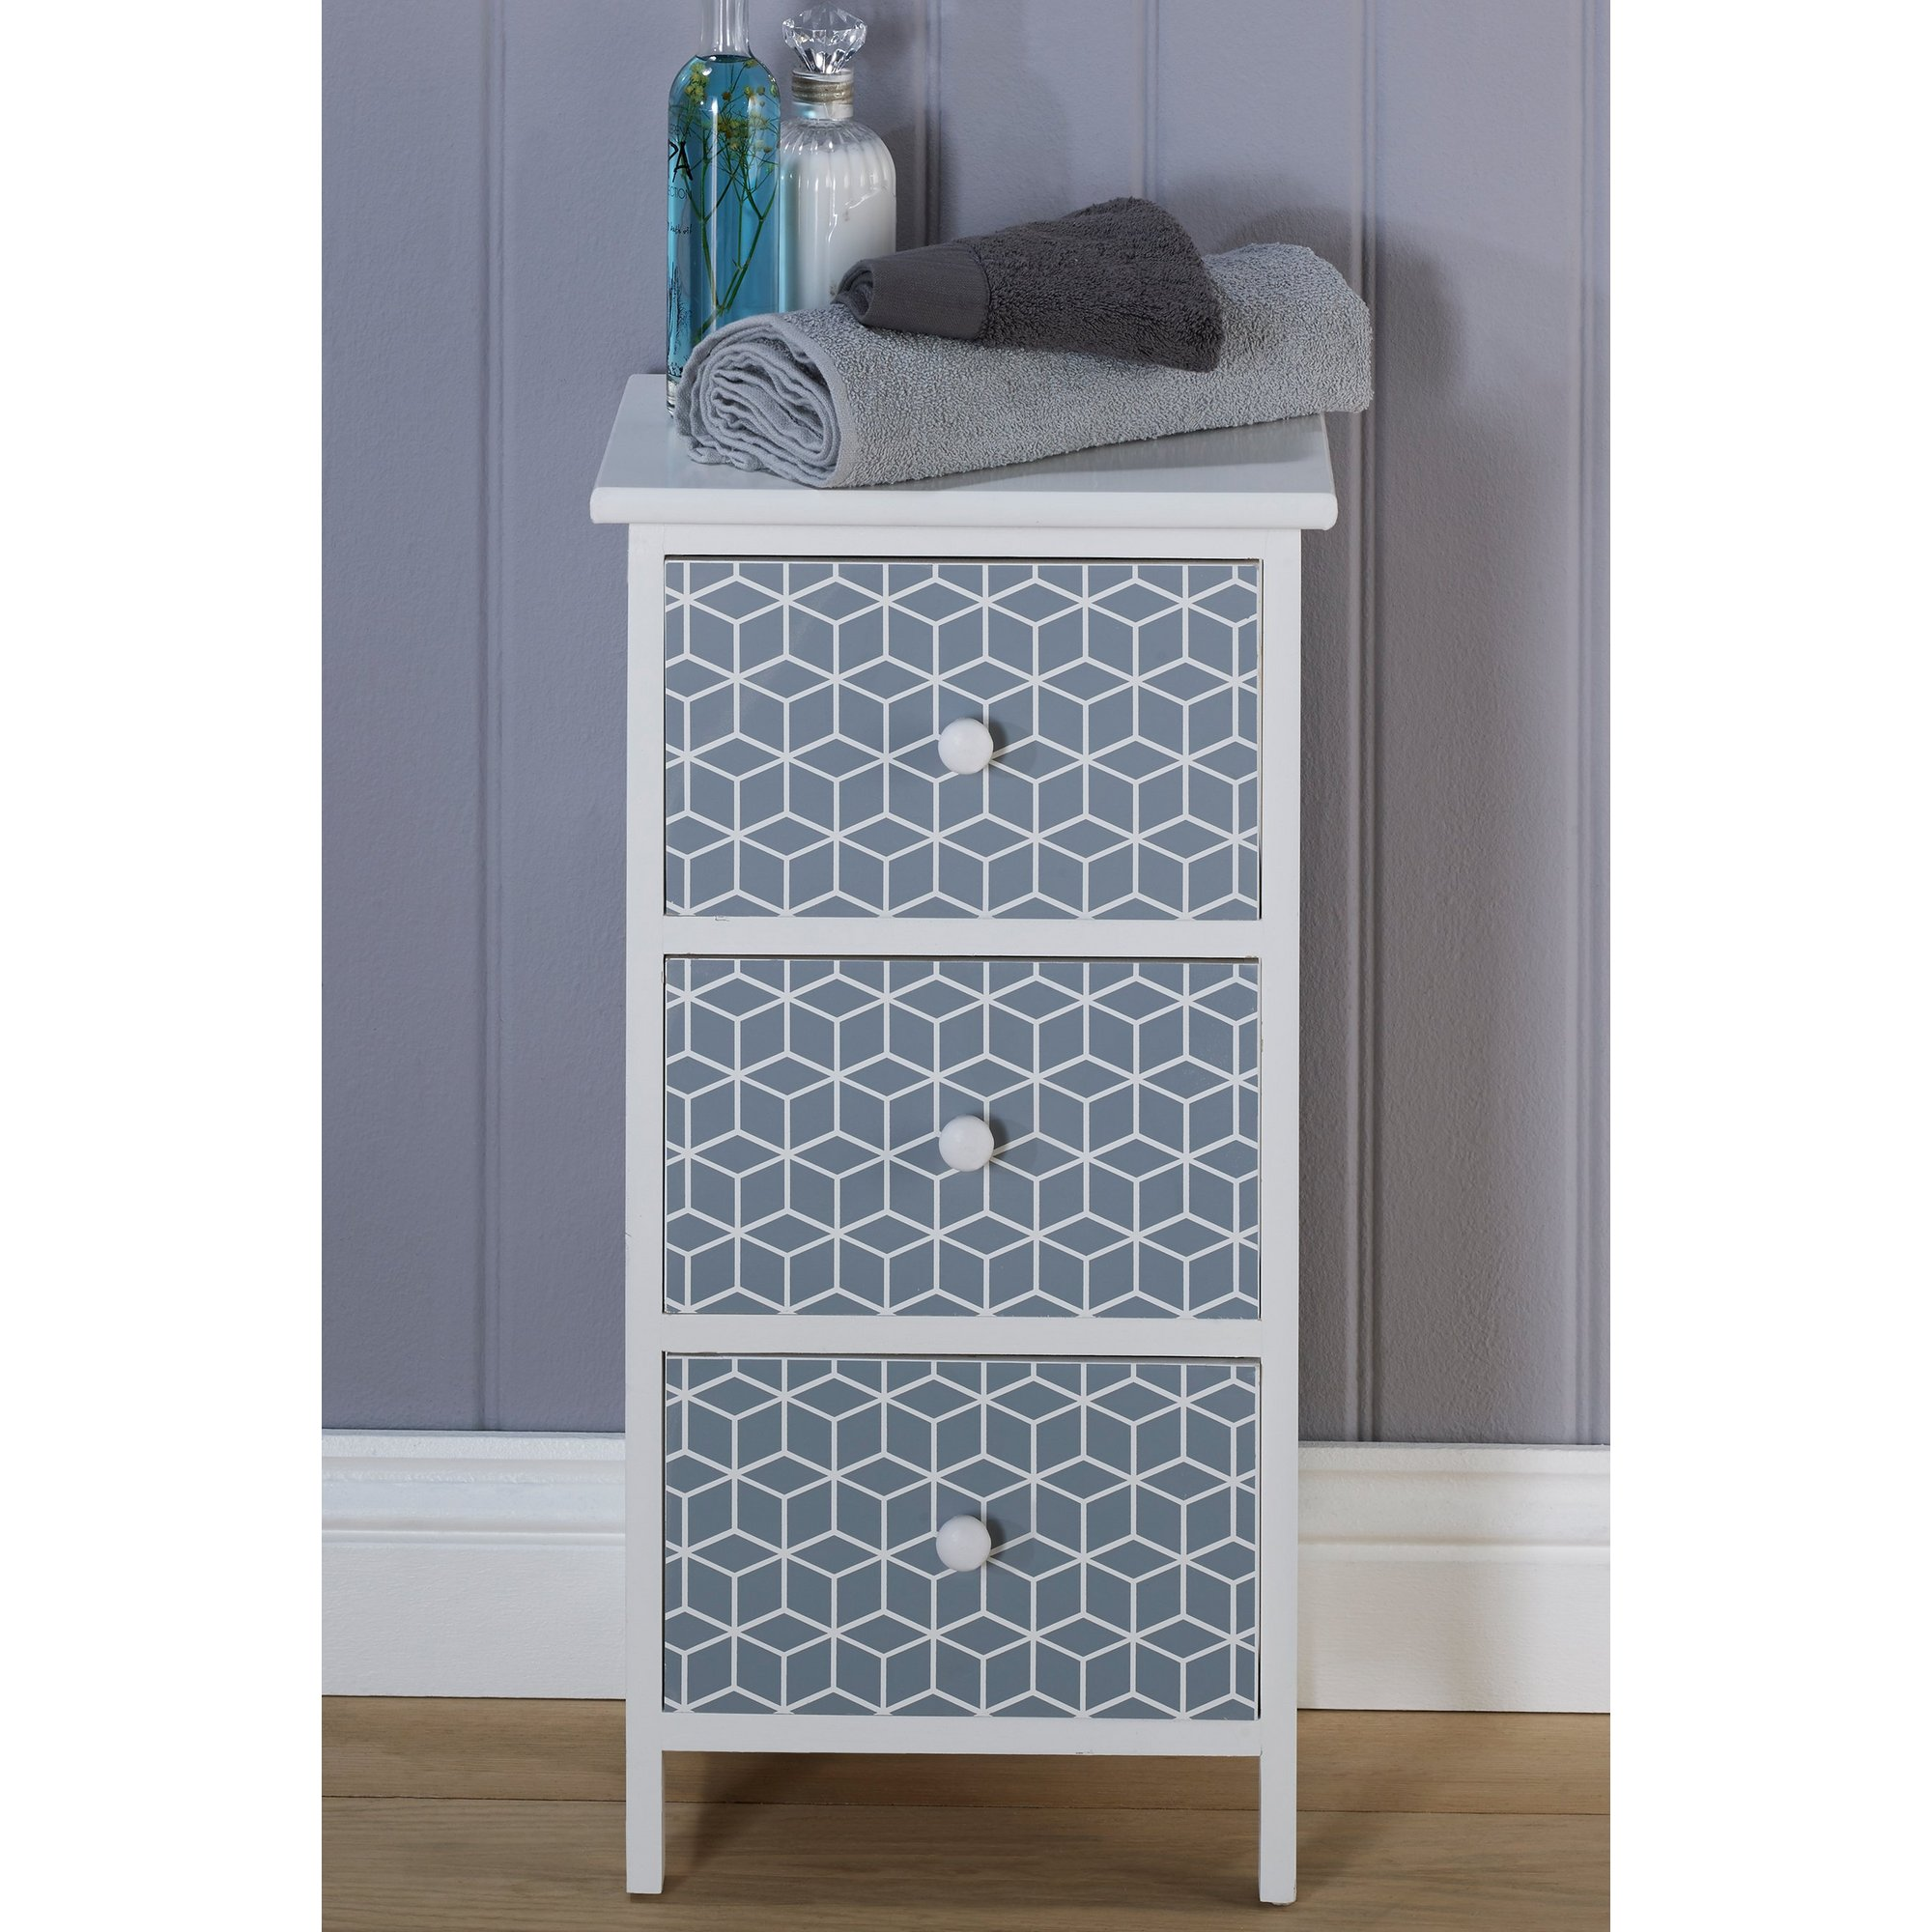 Image of 3 Drawer Geo Wooden Bathroom Unit